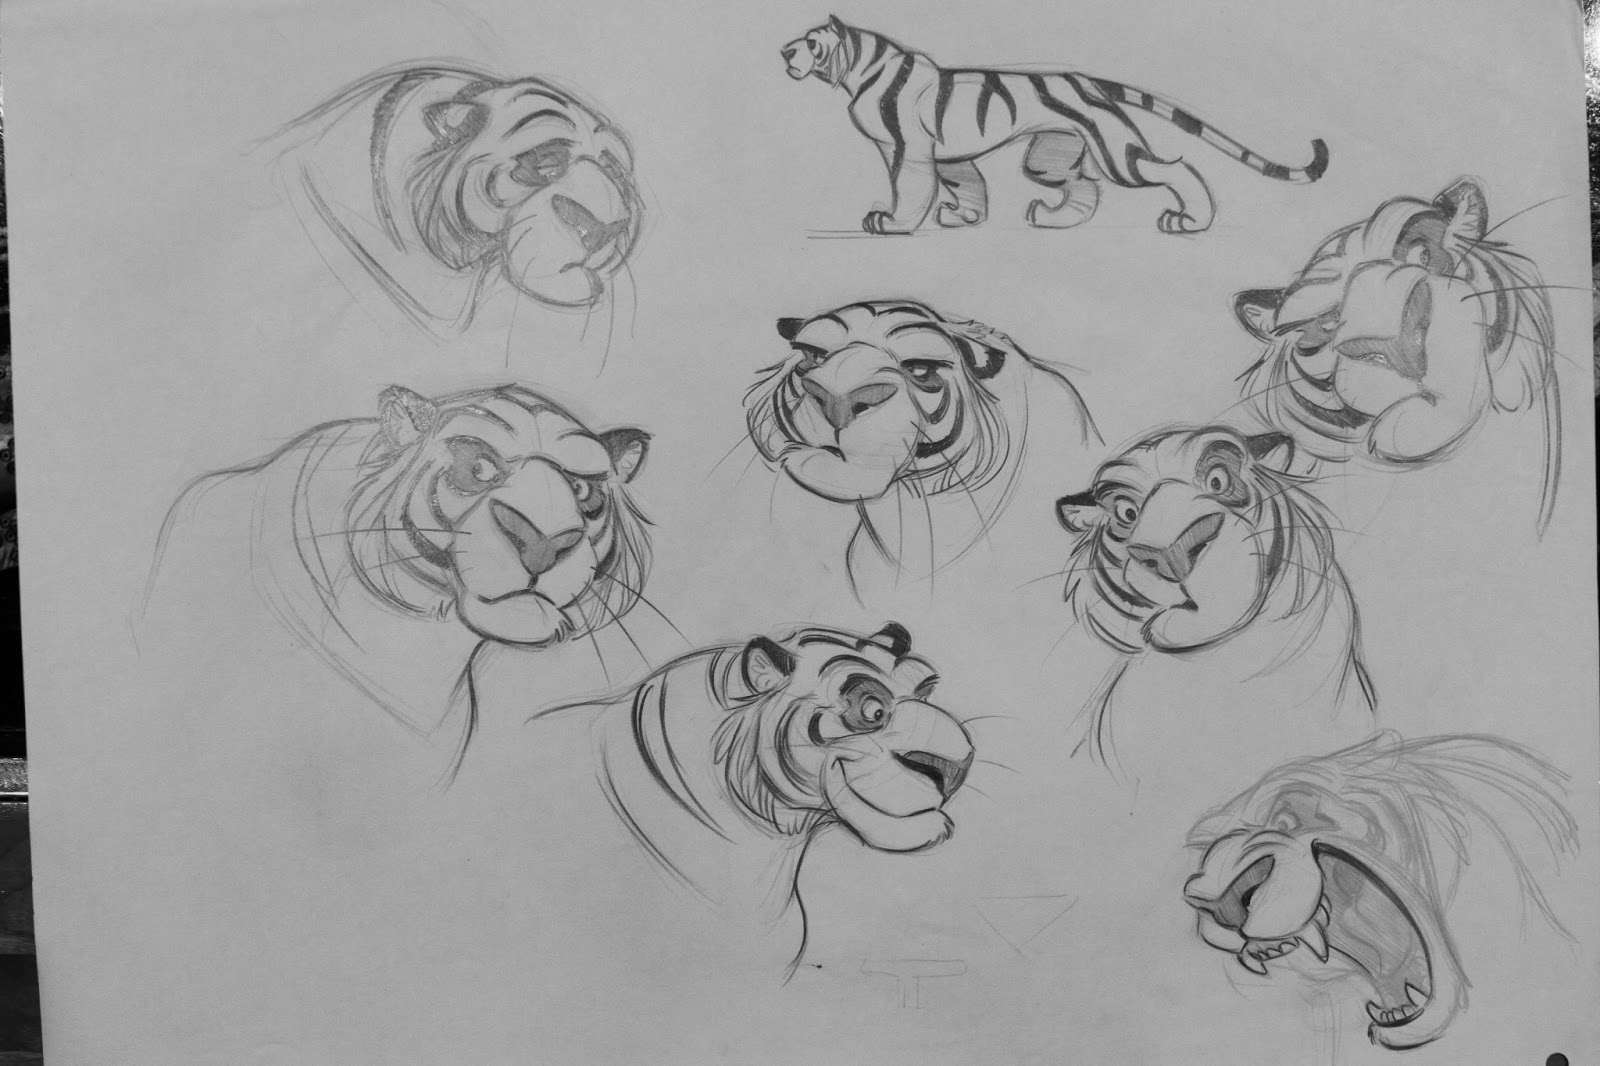 Animation h design s blog - In Packing My Home I Ve Come Across Some Old Animation Design Drawings I Ve Done Over The Years These Particular Drawings Are From Aladdin The Lion King